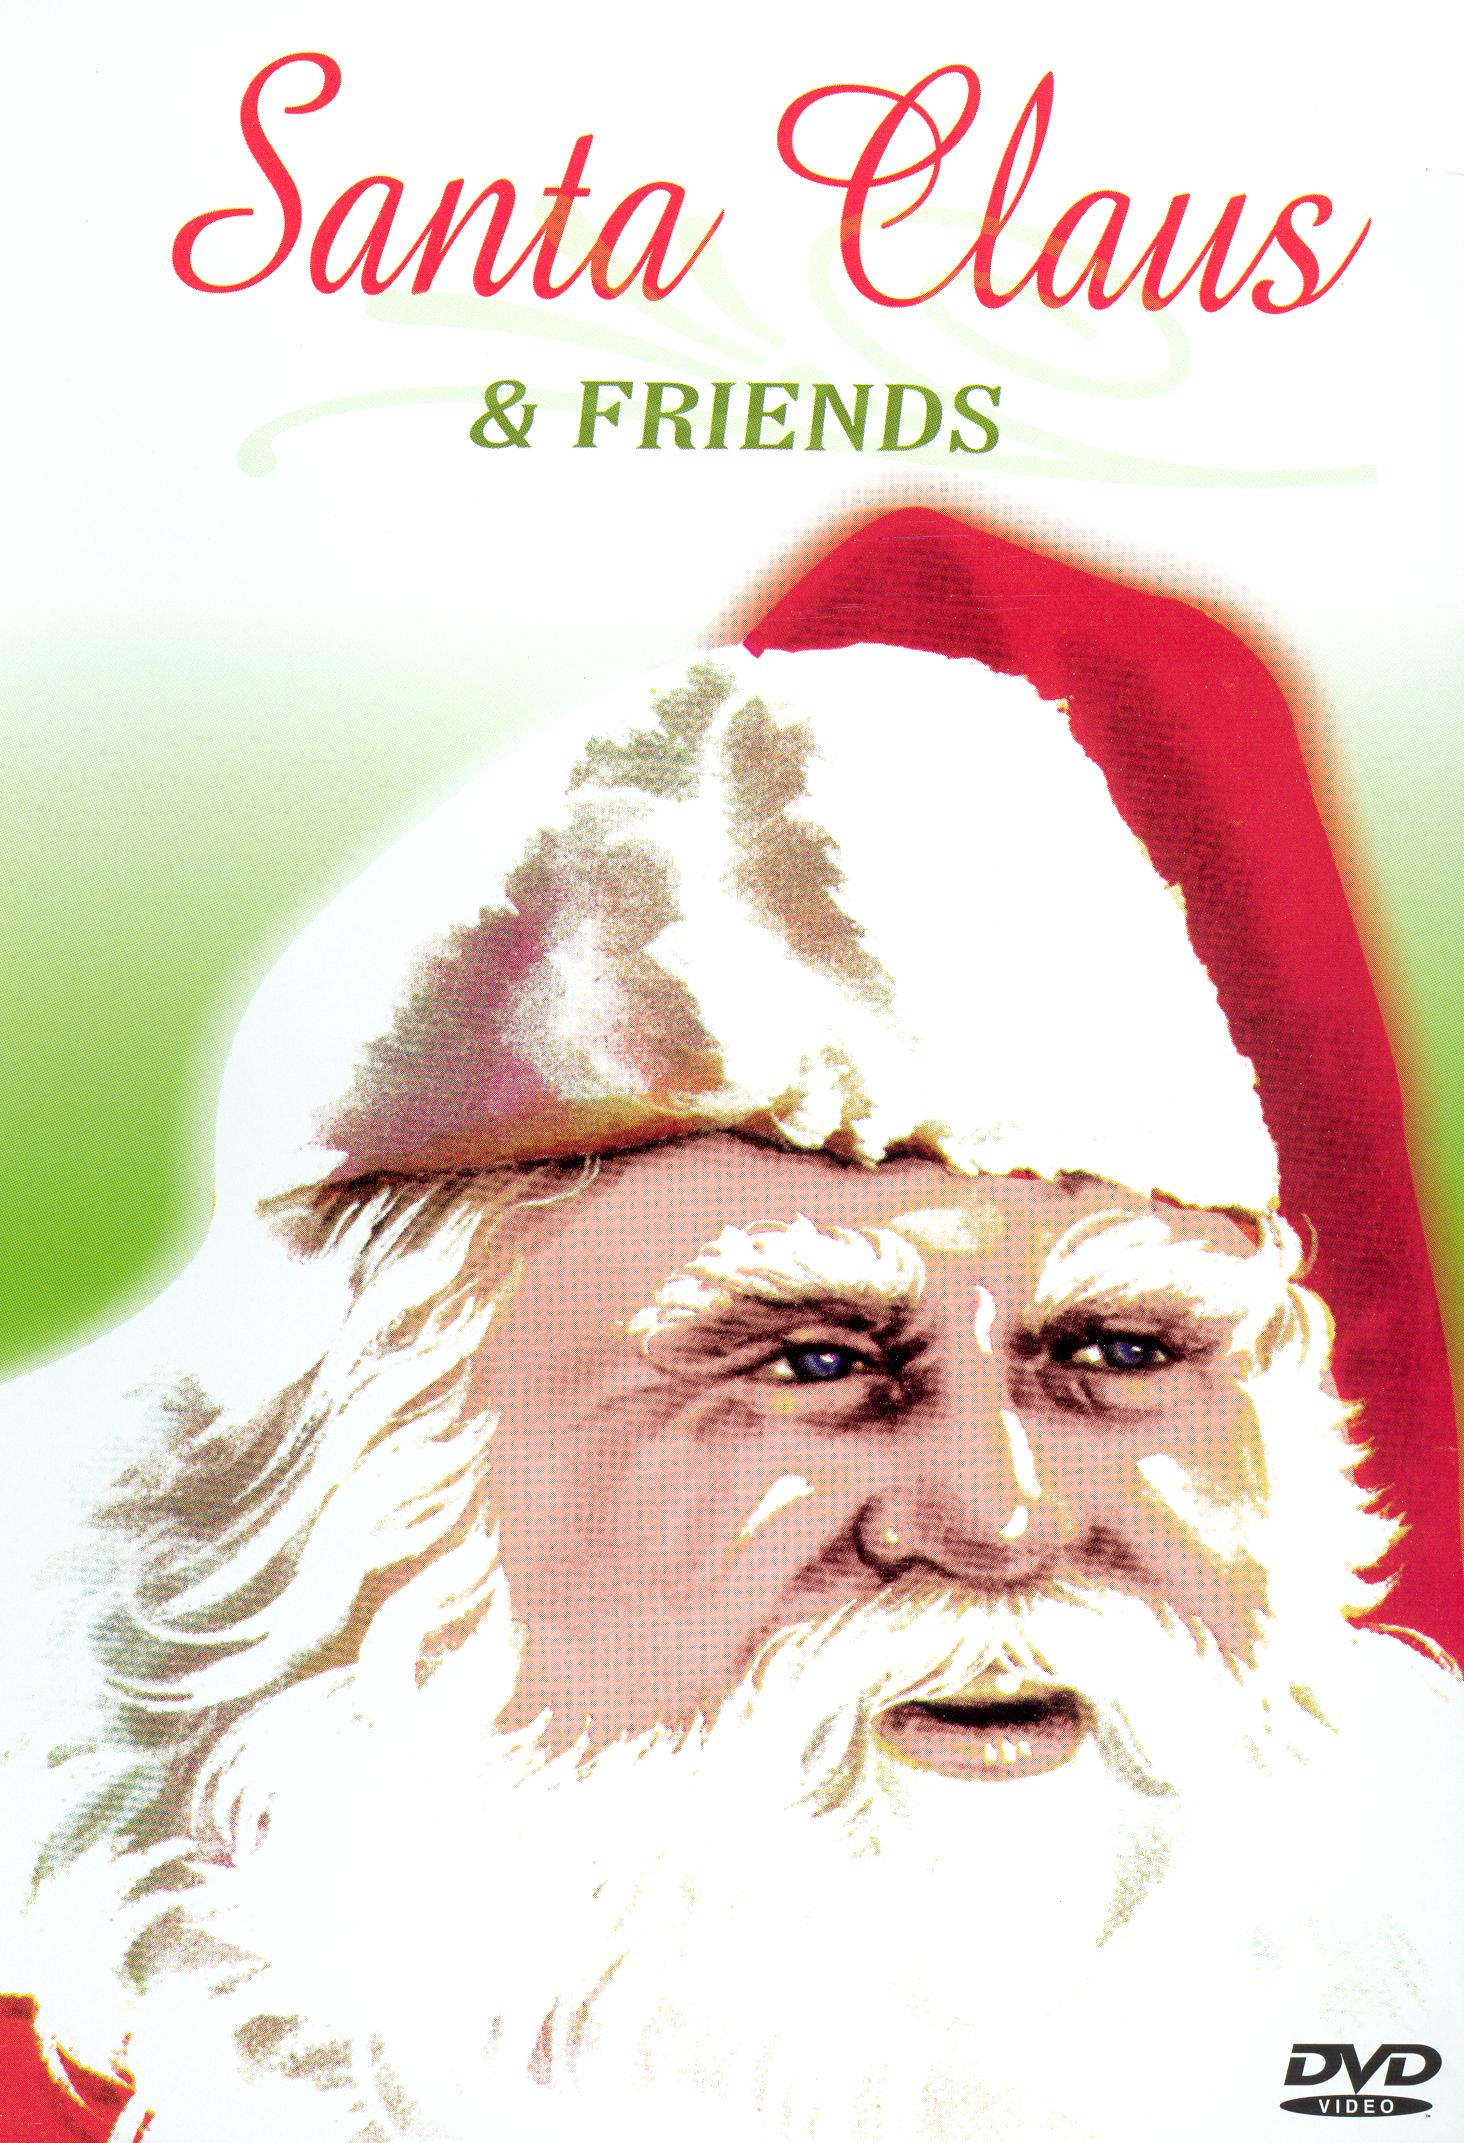 Santa Claus & Friends